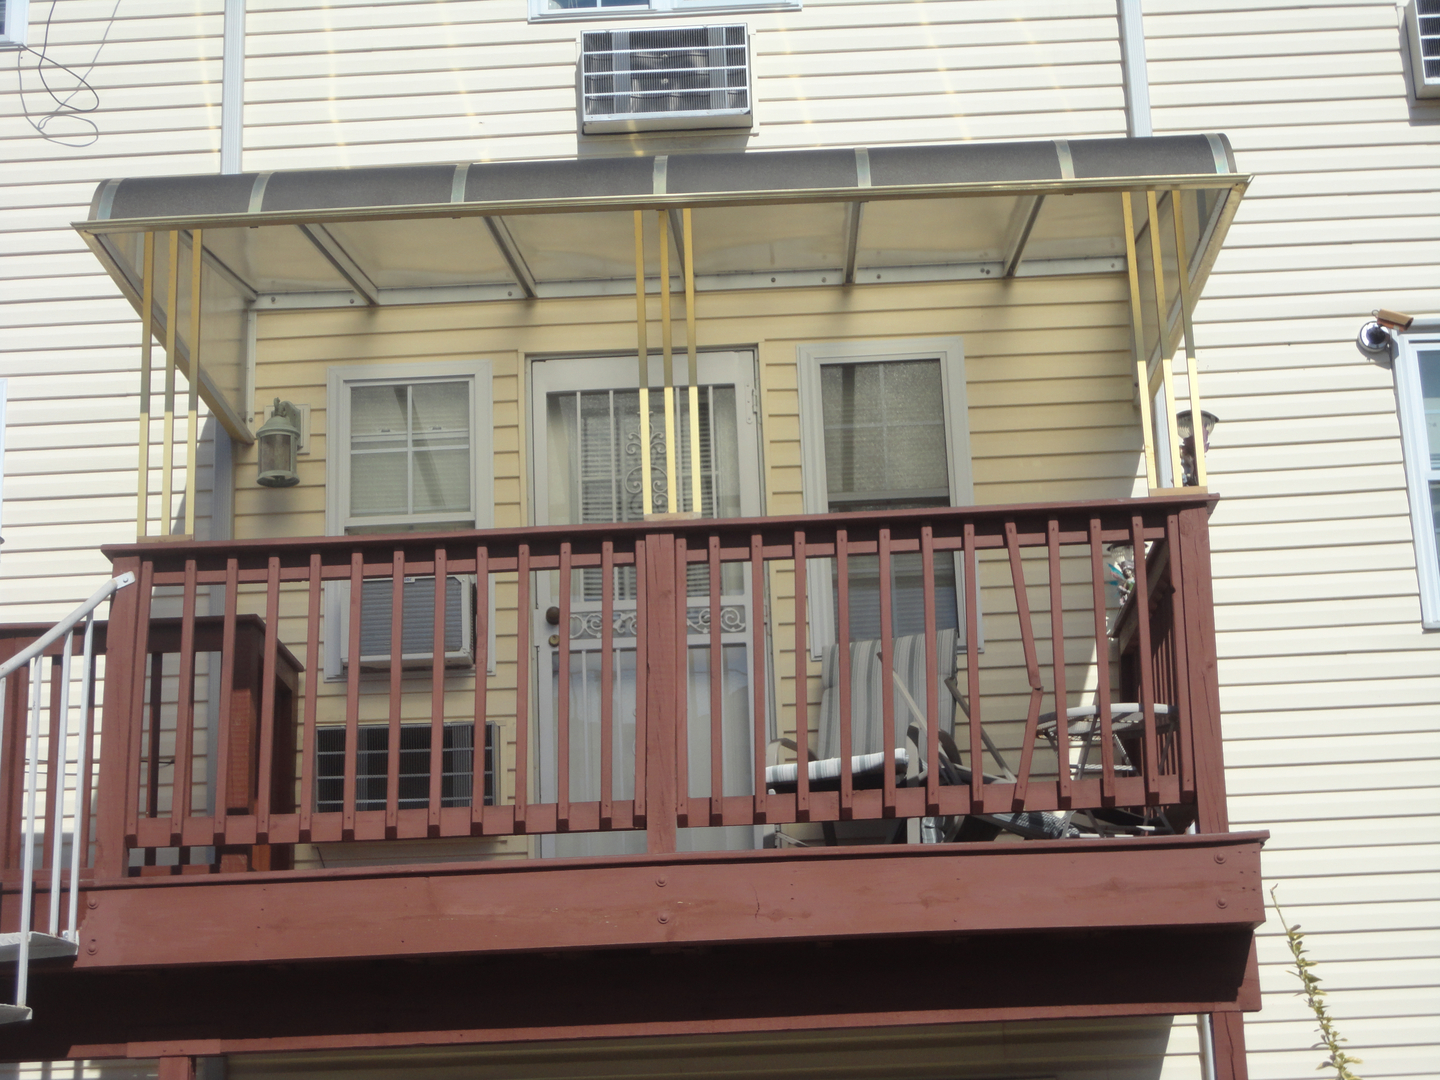 PLEXIGLASS AWNINGS COME WITH EITHER CLEAR TINTED GOLD OR GREEN POLYCARBONATED SHEETS THE FRAMES ARE MADE OUT OF HEAVY DUTY ALUMINUM METAL AND